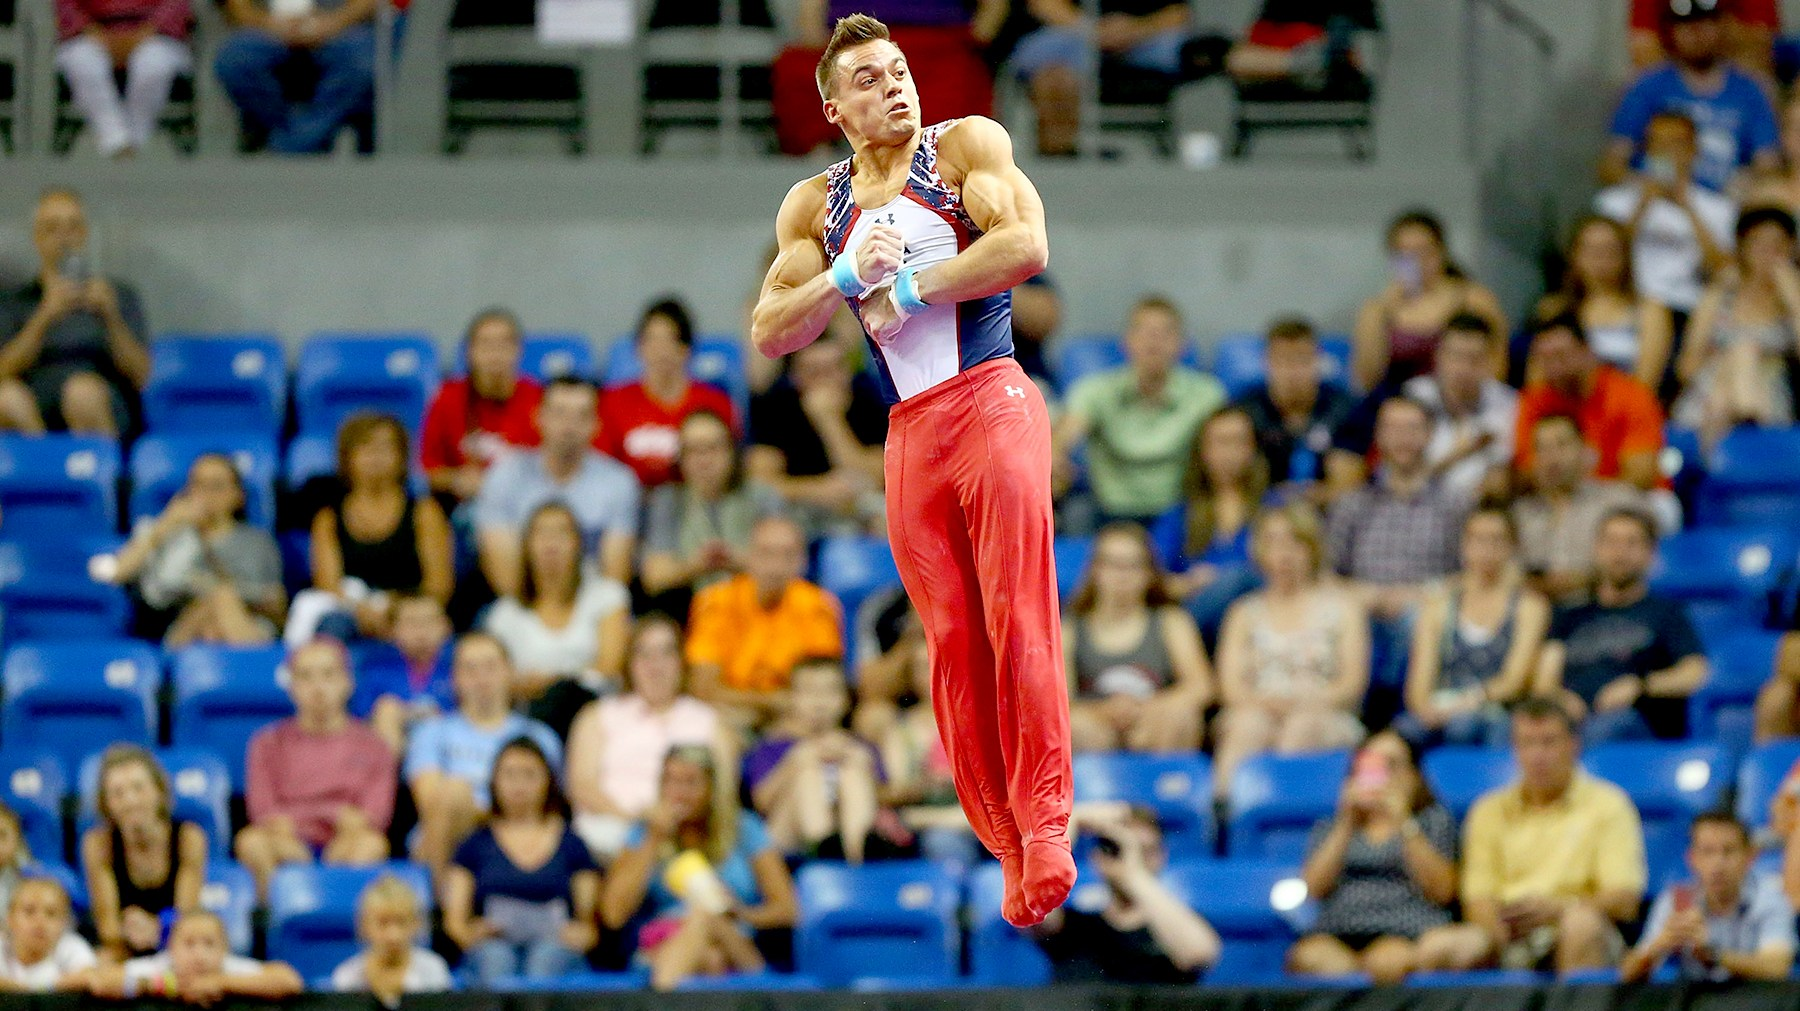 Sam Mikulak competes on the high bar during day two of the 2016 Men's Gymnastics Olympic Trials at Chafitz Arena on June 25, 2016 in St. Louis, Missouri.